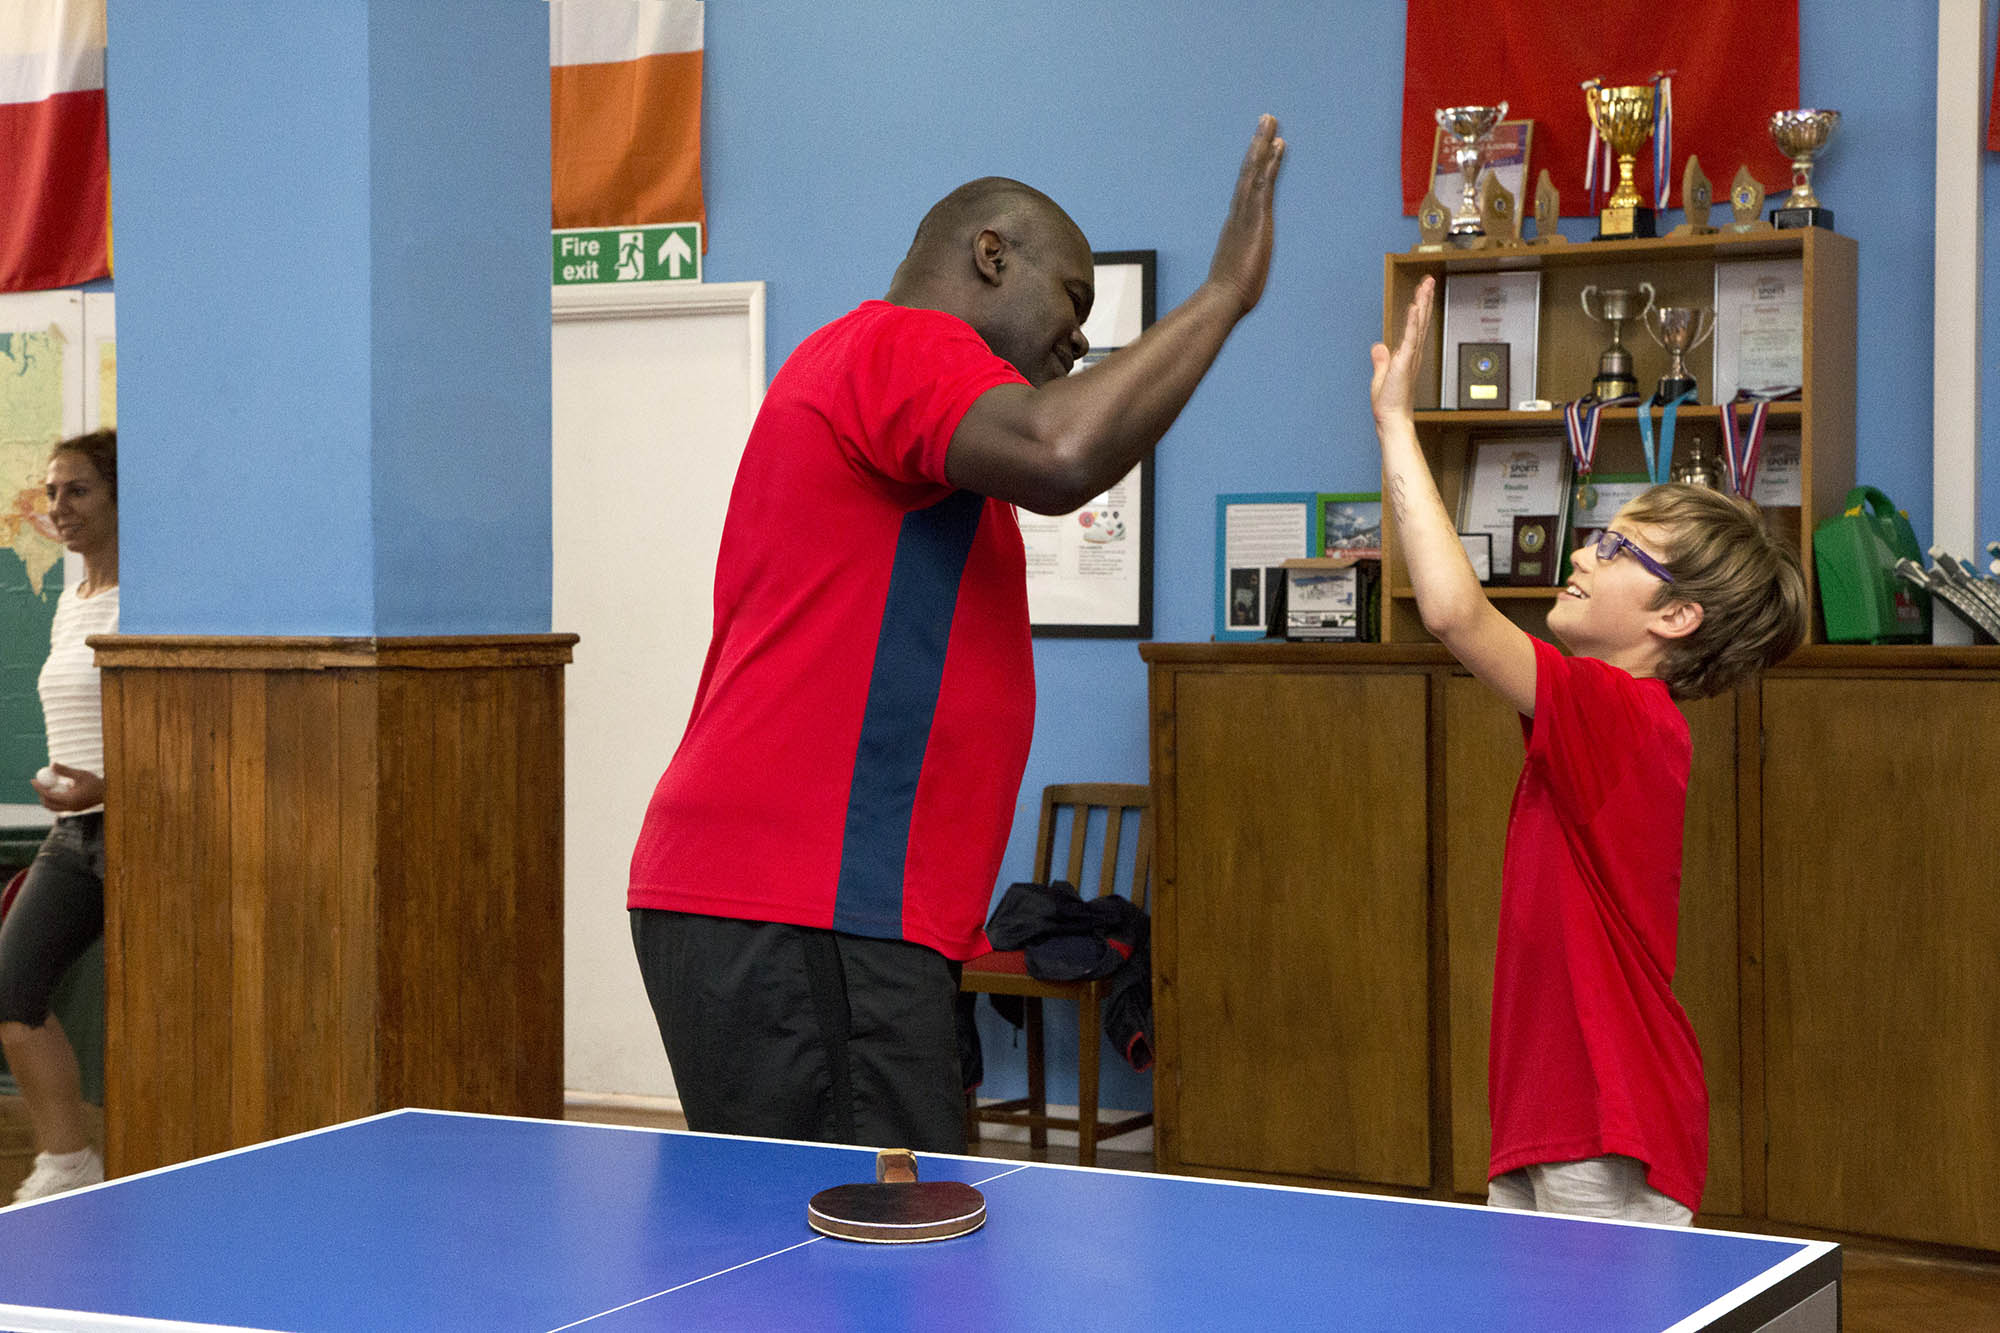 man high-fiving younger boy at table tennis table